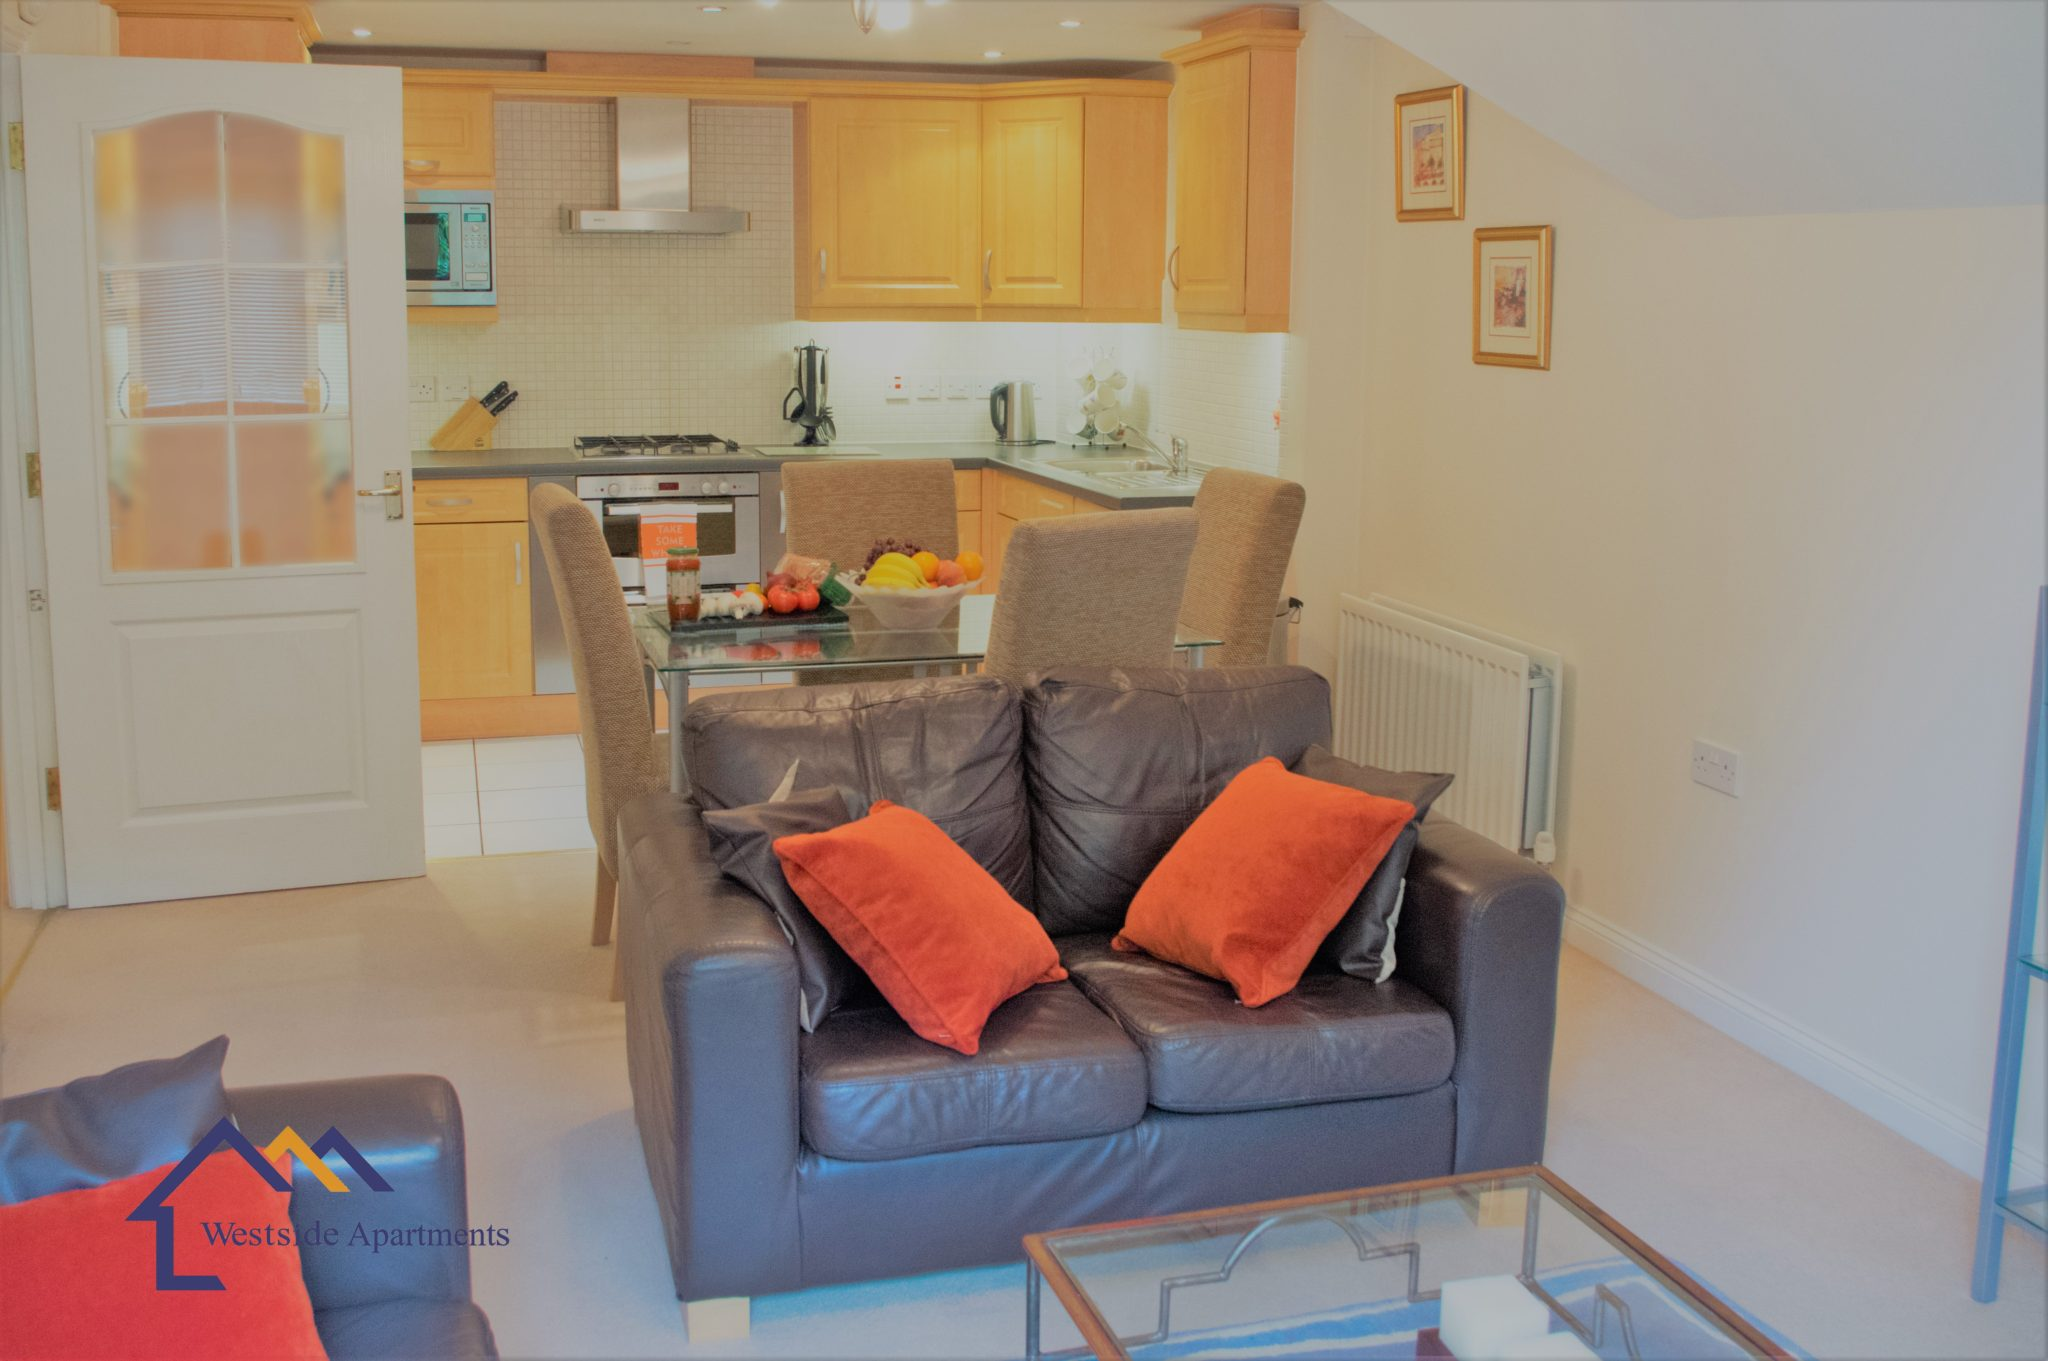 Basingstoke-Short-Let-Apartments-Hampshire-|-Serviced-Apartments-Basingstoke-UK-|-Cheap-Self-catering-Accommodation-UK-|-Parking---Wifi---Urban-Stay